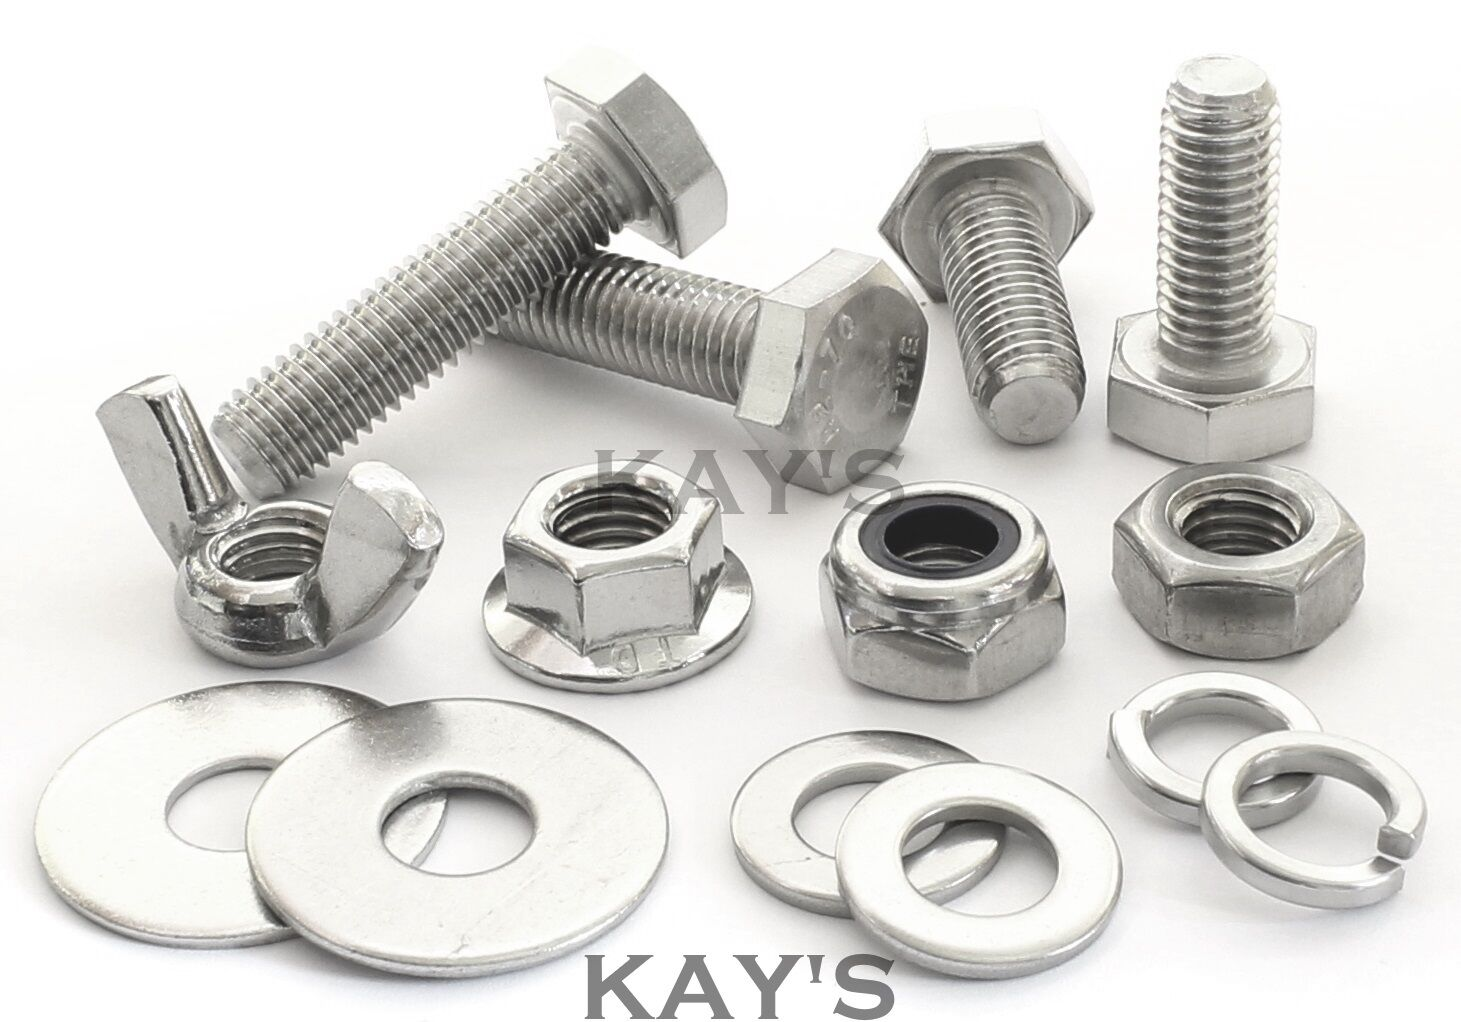 M5 FASTENERS CHOOSE FULLY THREADED SCREWS, NUTS OR WASHERS STAINLESS STEEL BOLTS